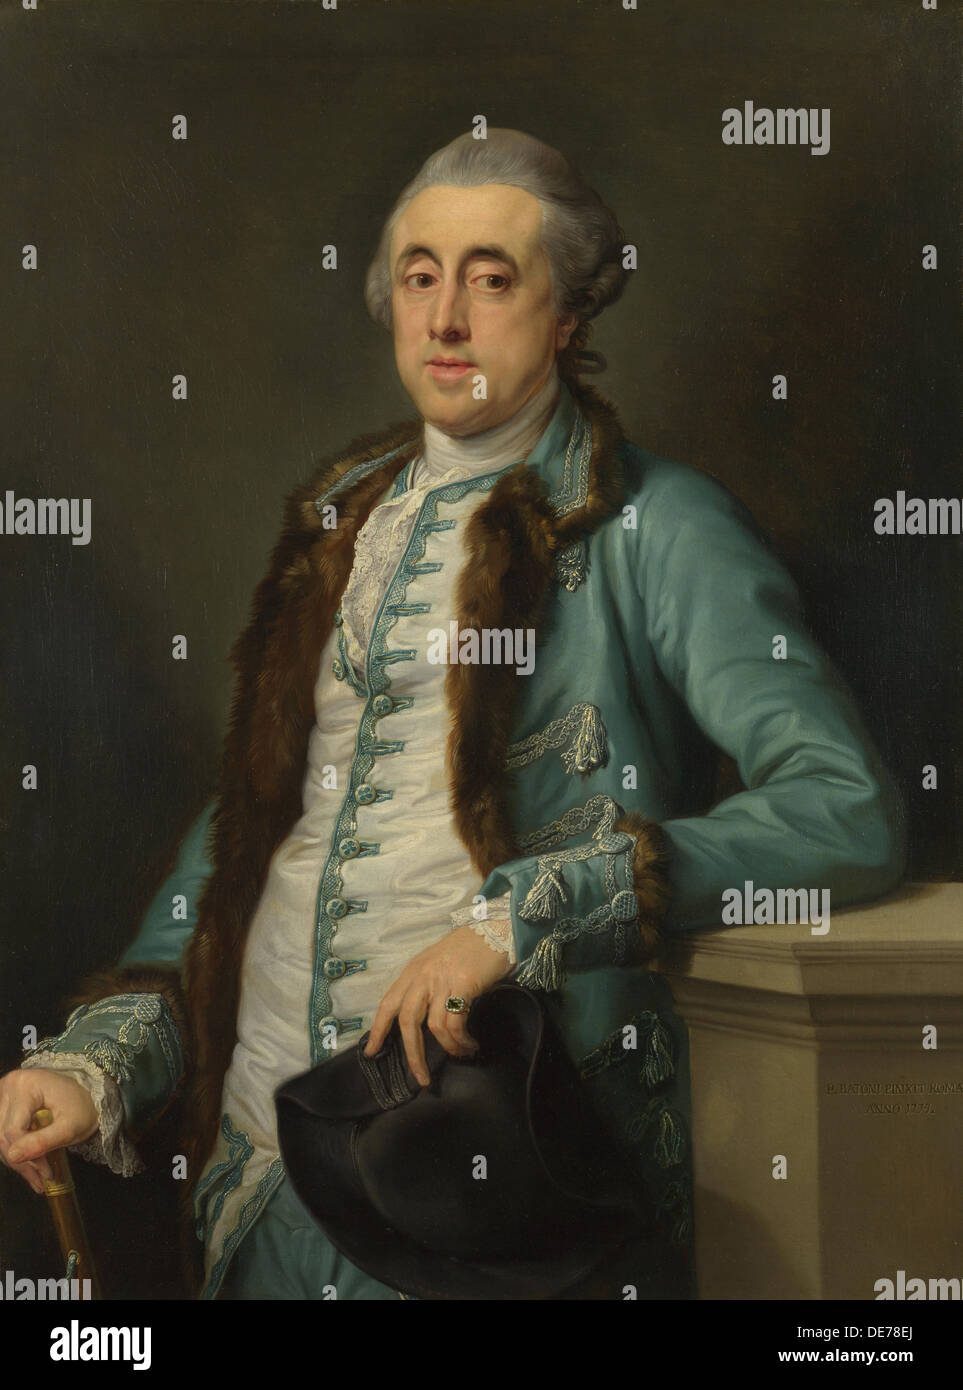 Portrait of John Scott (?) of Banks Fee, 1774. Artist: Batoni, Pompeo Girolamo (1708-1787) - Stock Image